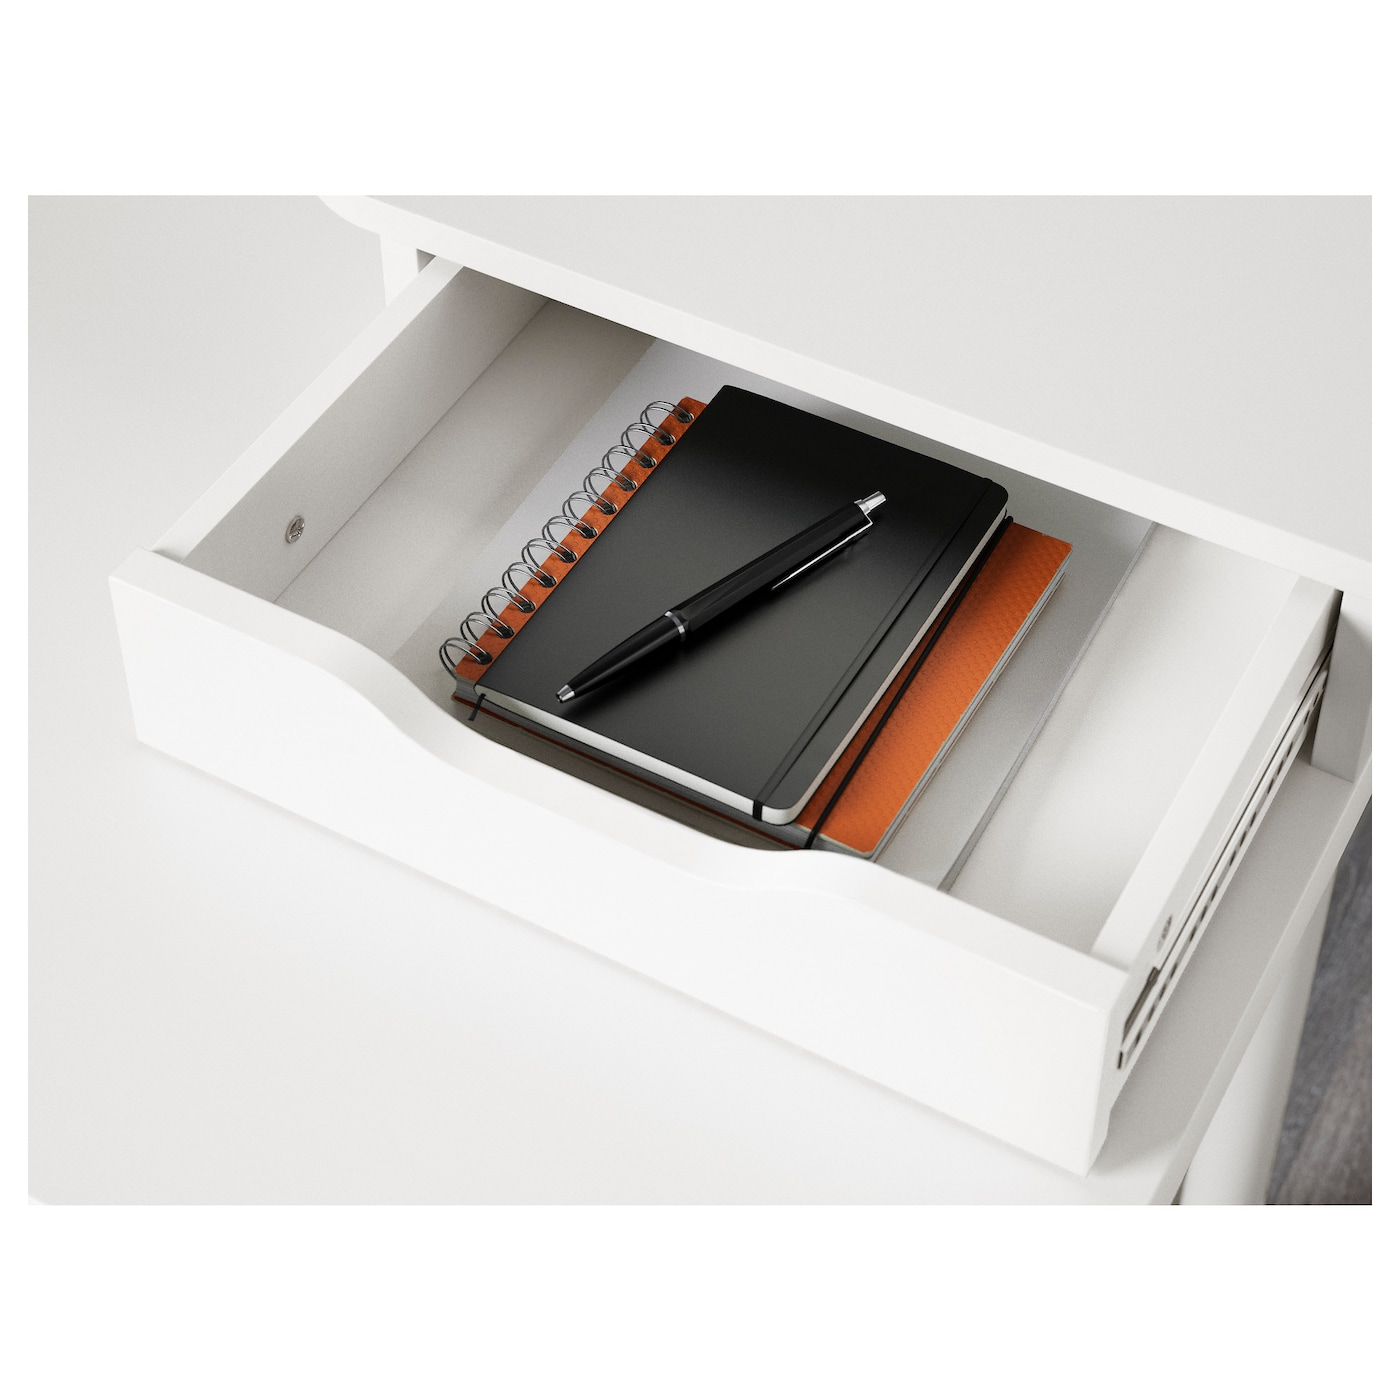 IKEA ALEX add-on unit Perfect storage for your laptop in the space between the 2 drawers.